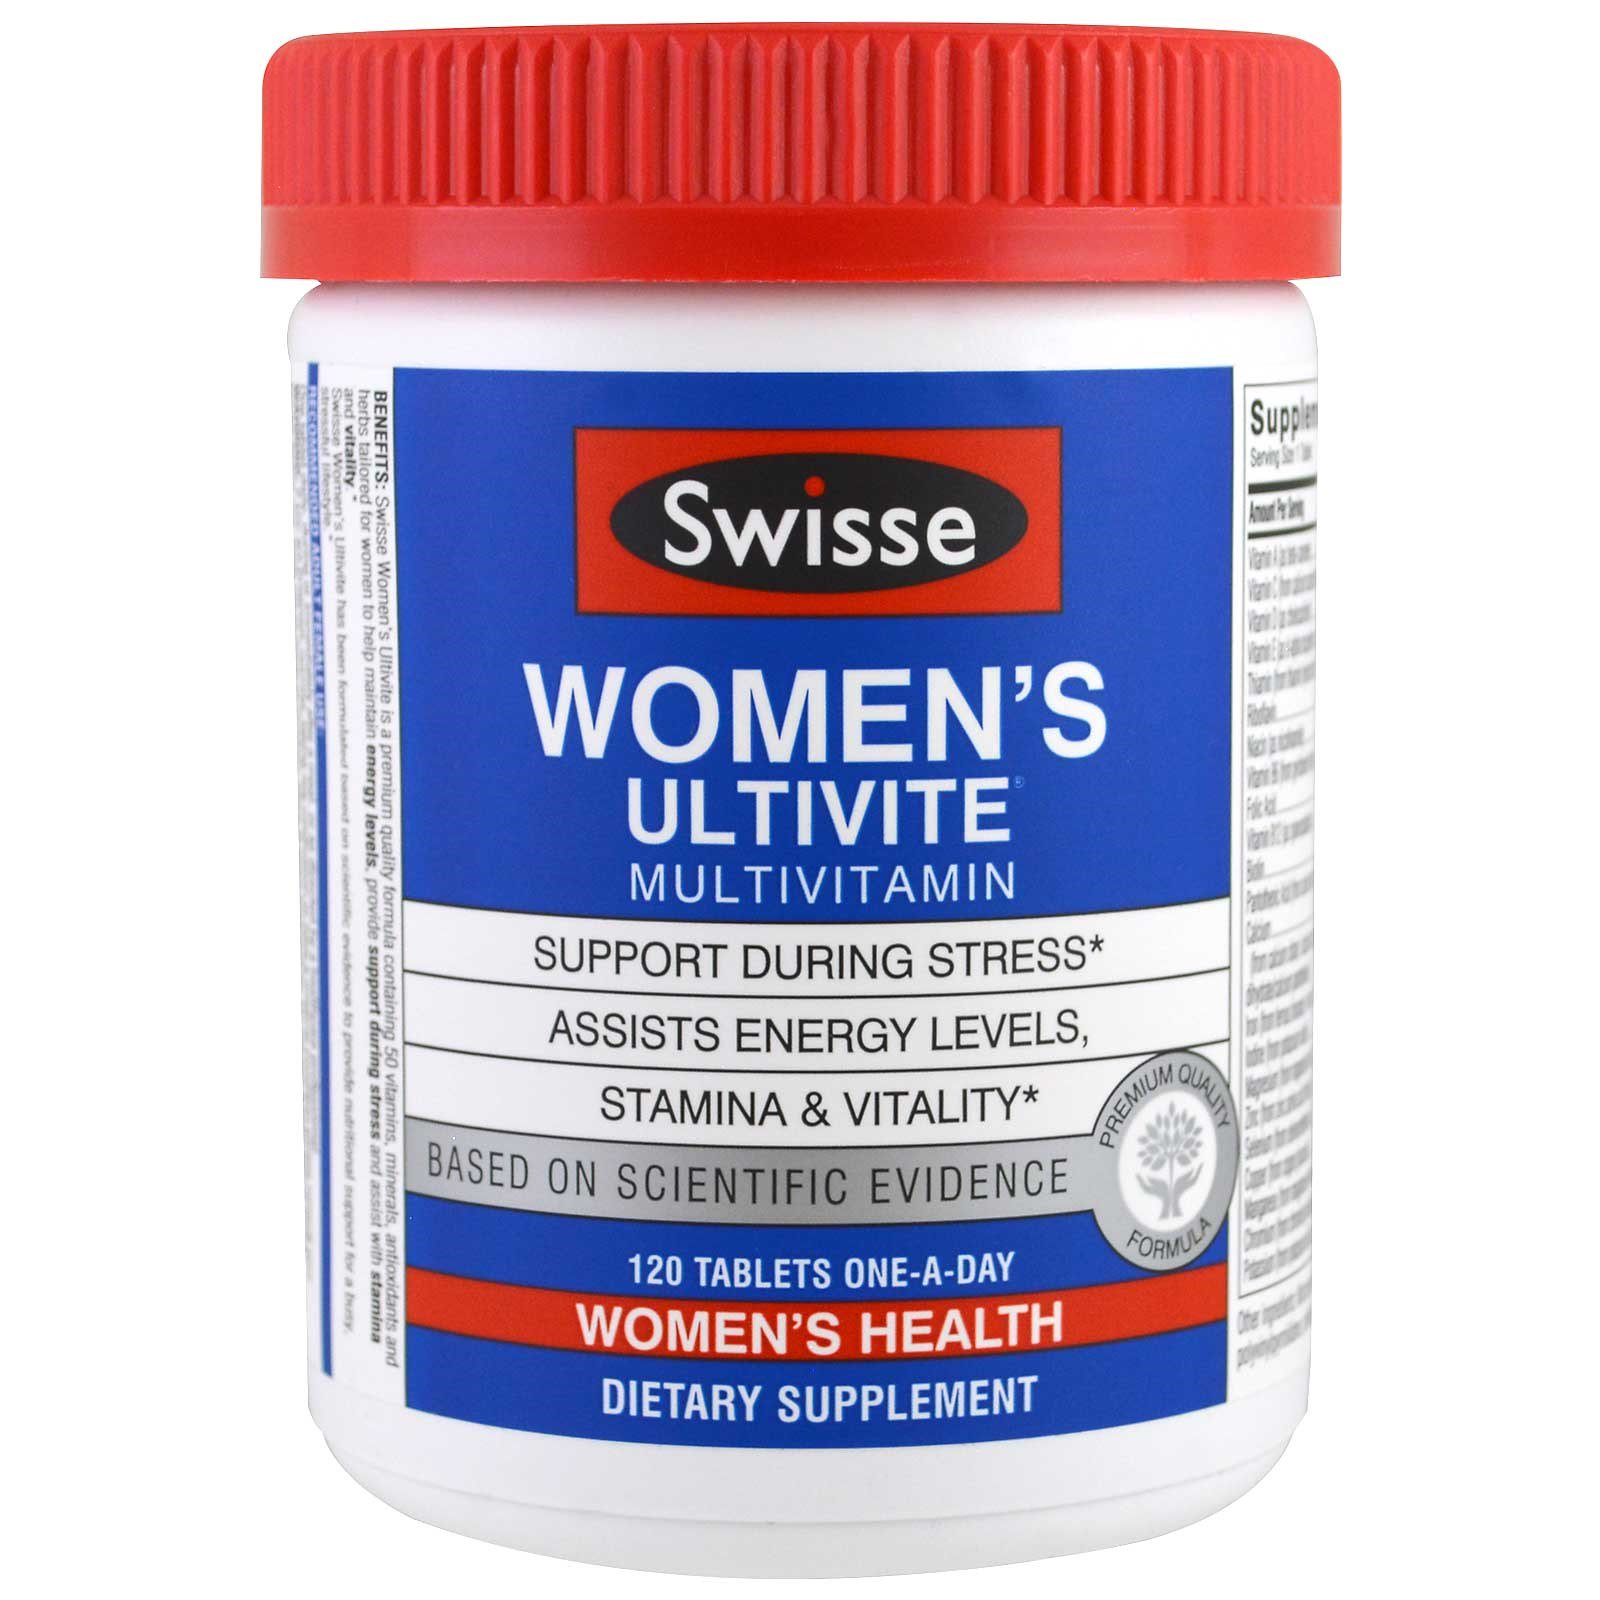 Swisse Women S Ultivite Multivitamin 120 Tablets Iherb Com